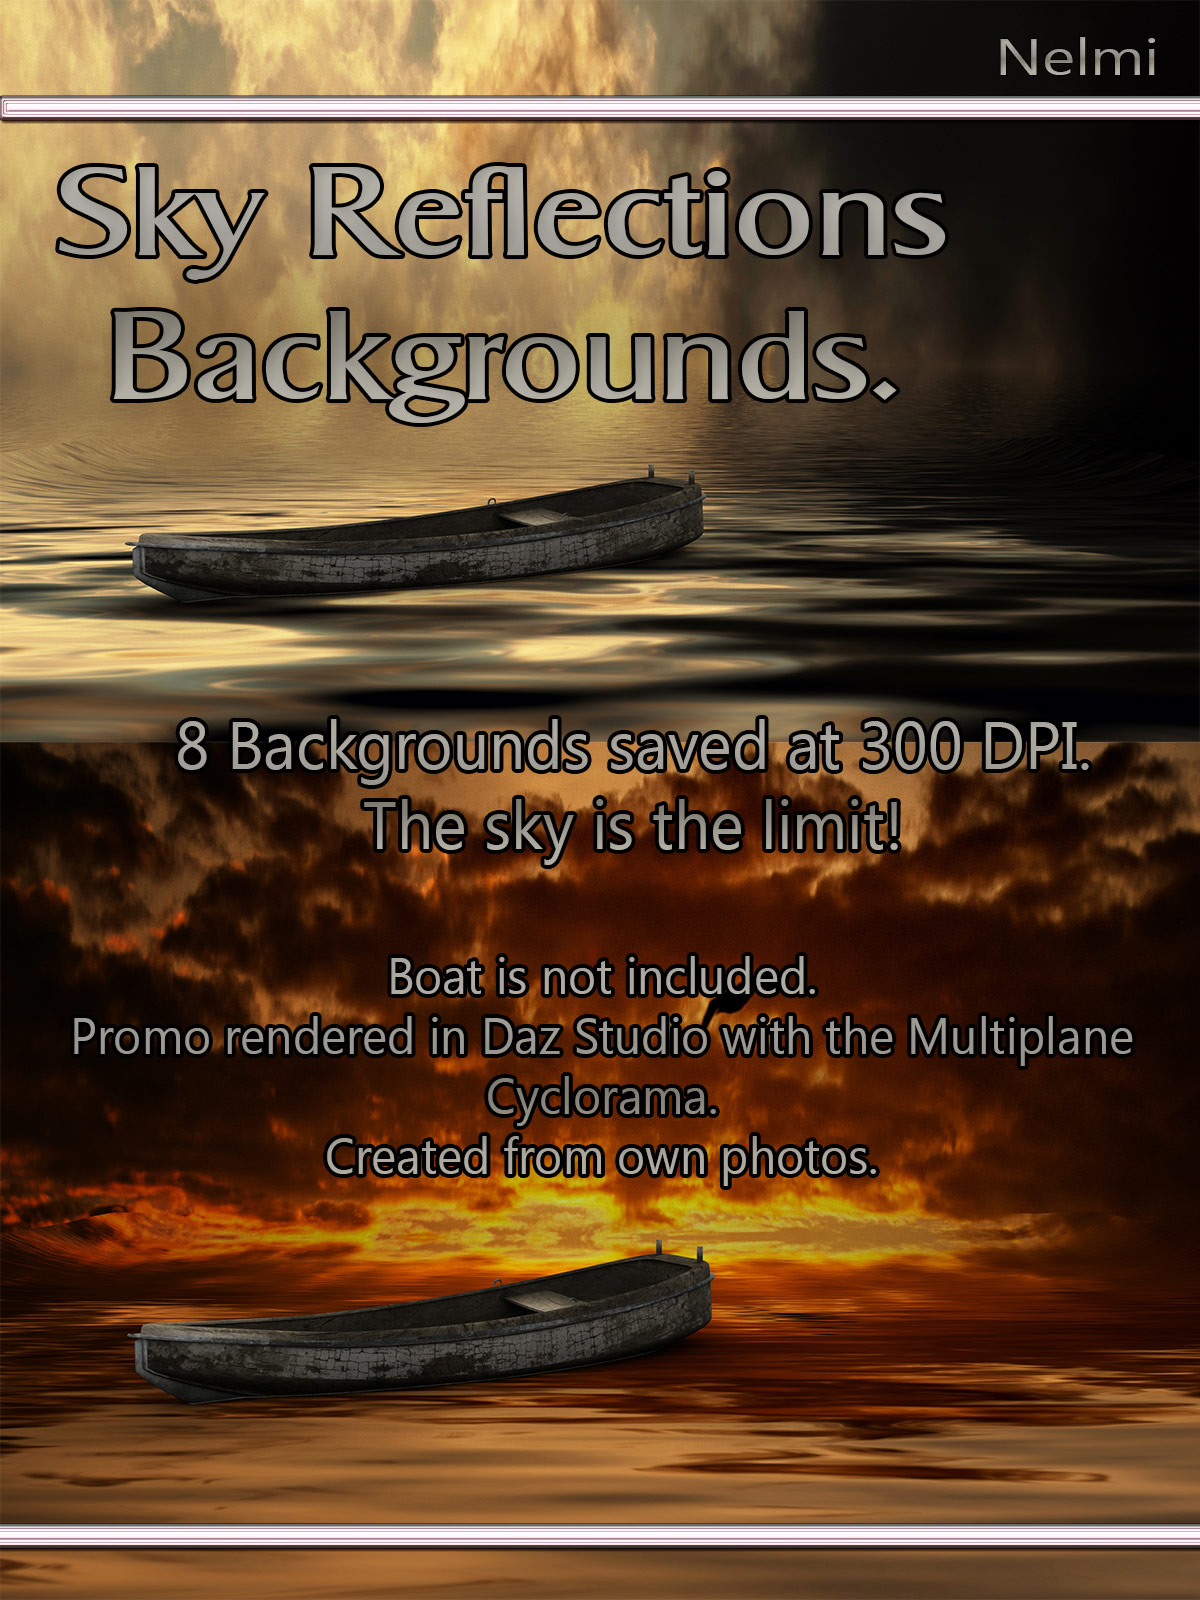 8 Sky Reflections Backgrounds